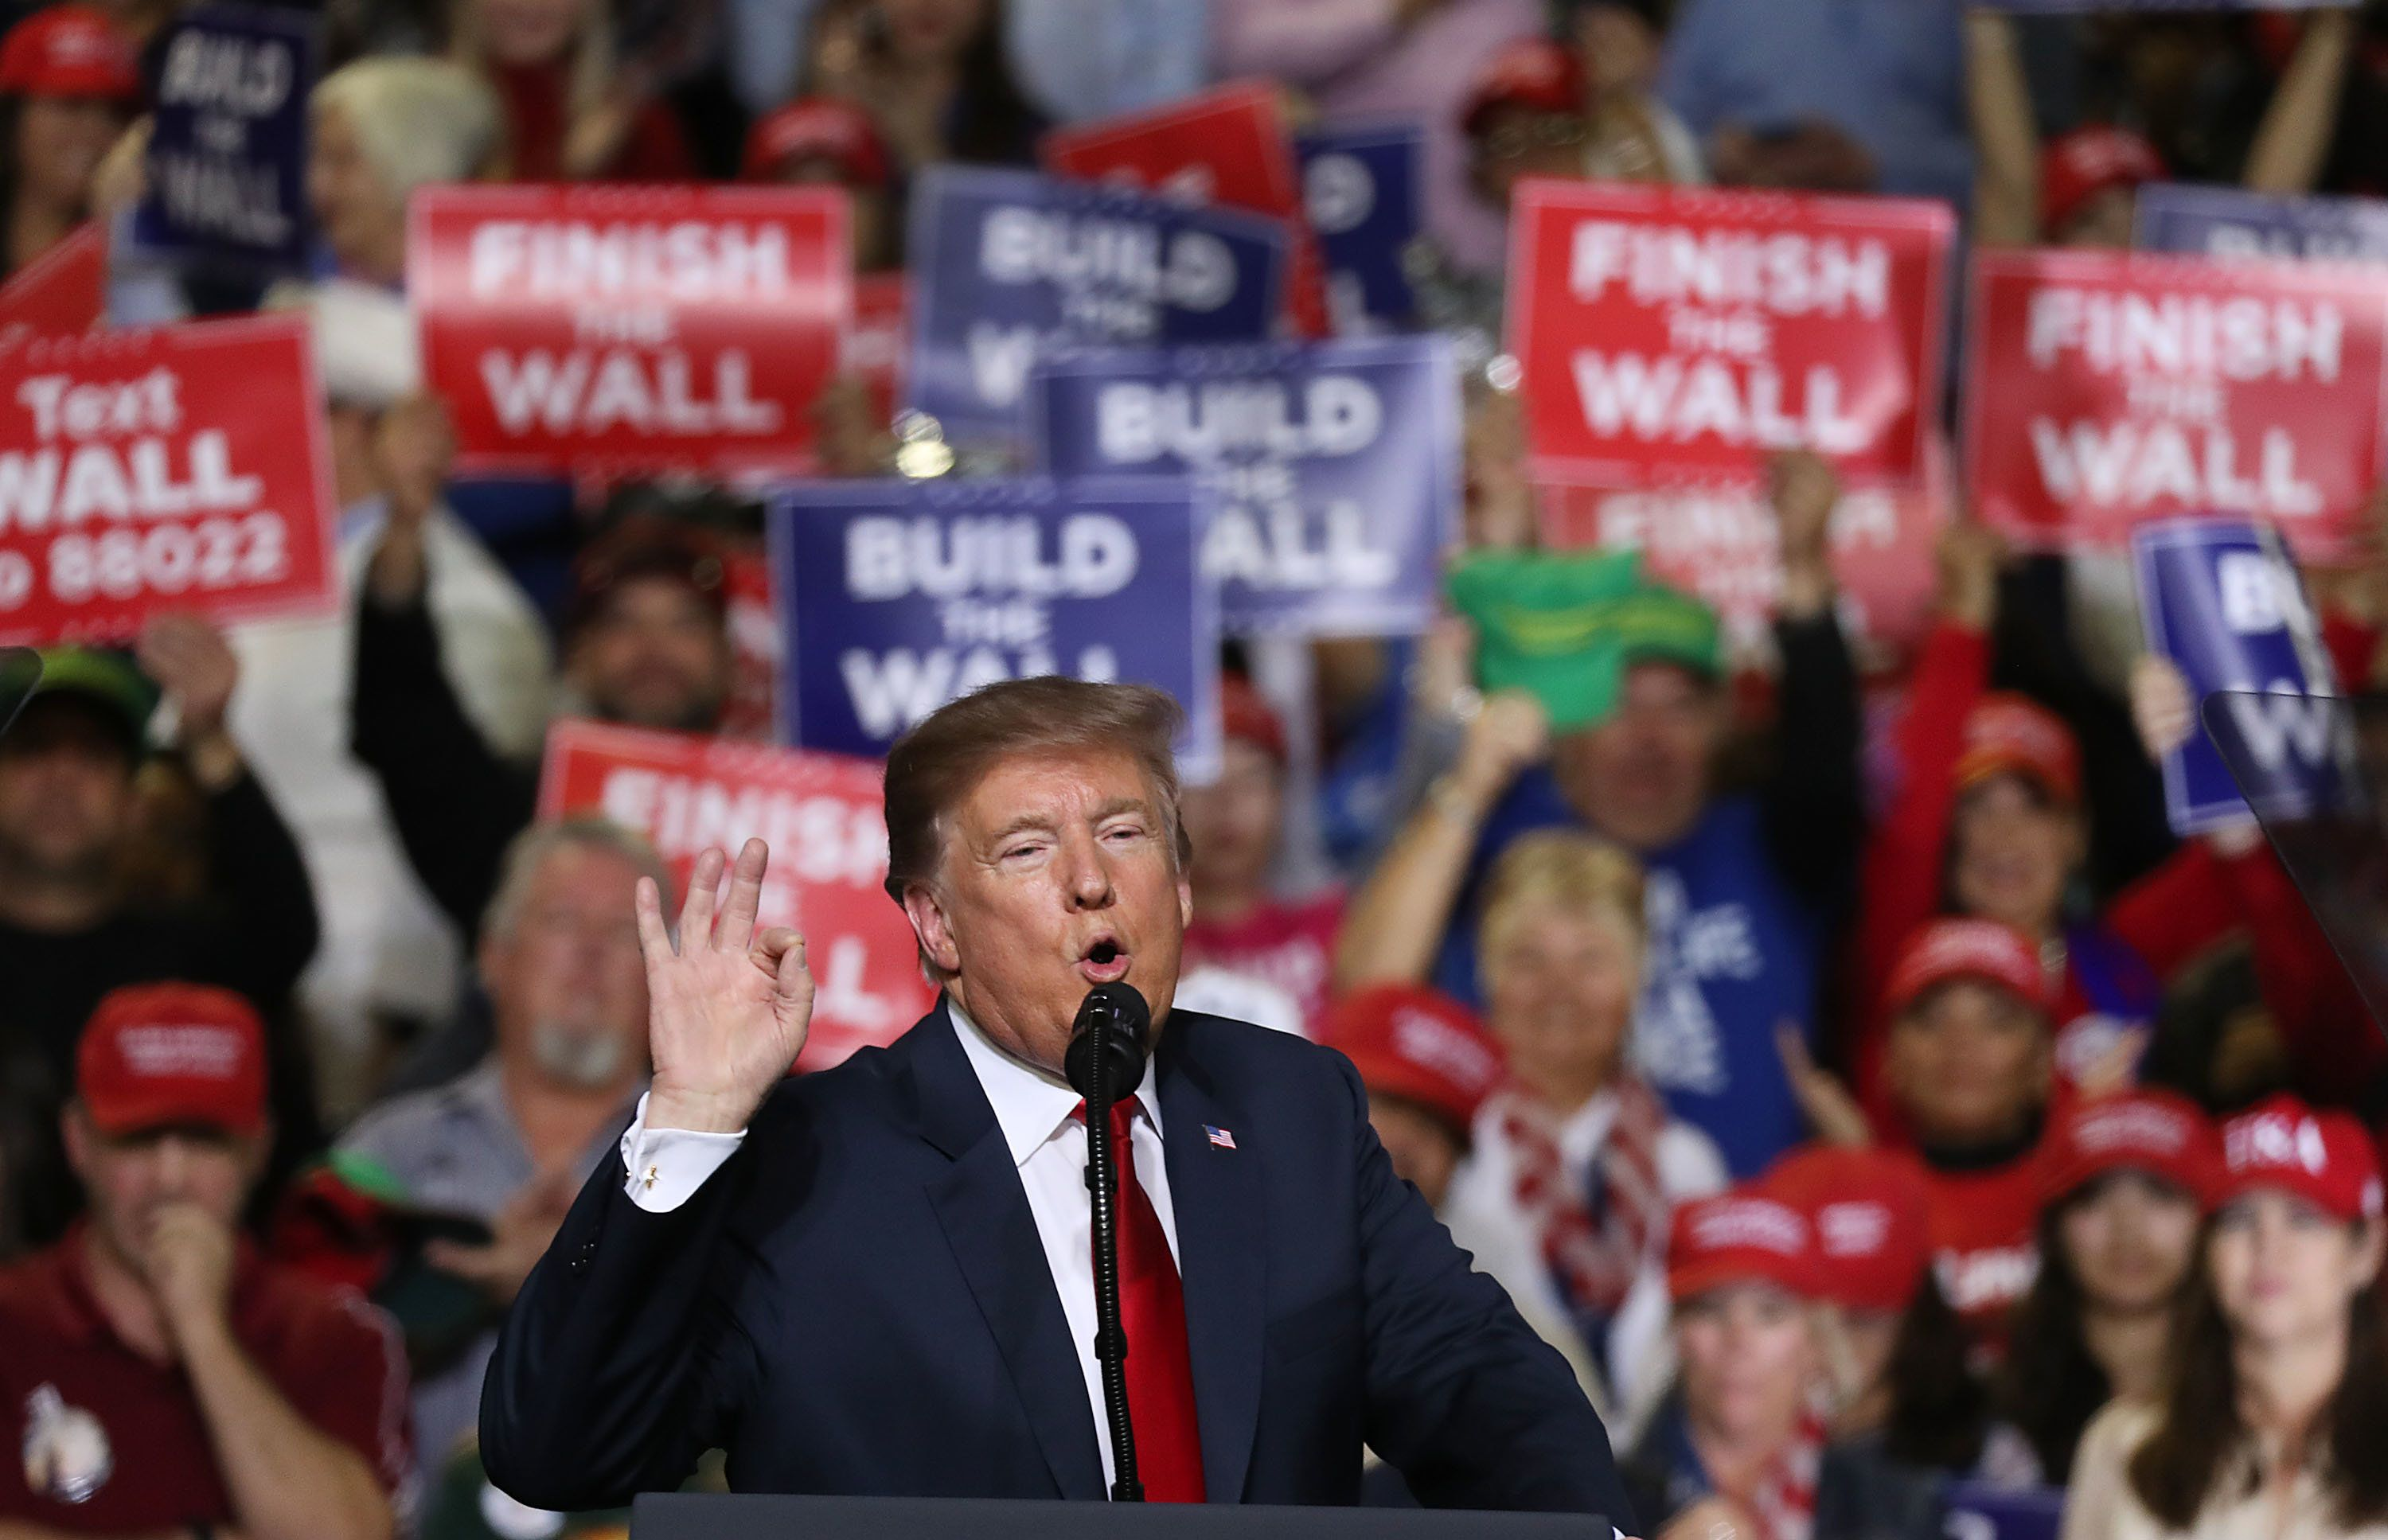 Donald Trump Hails Just Built Border Wall But Uses Months-Old Footage